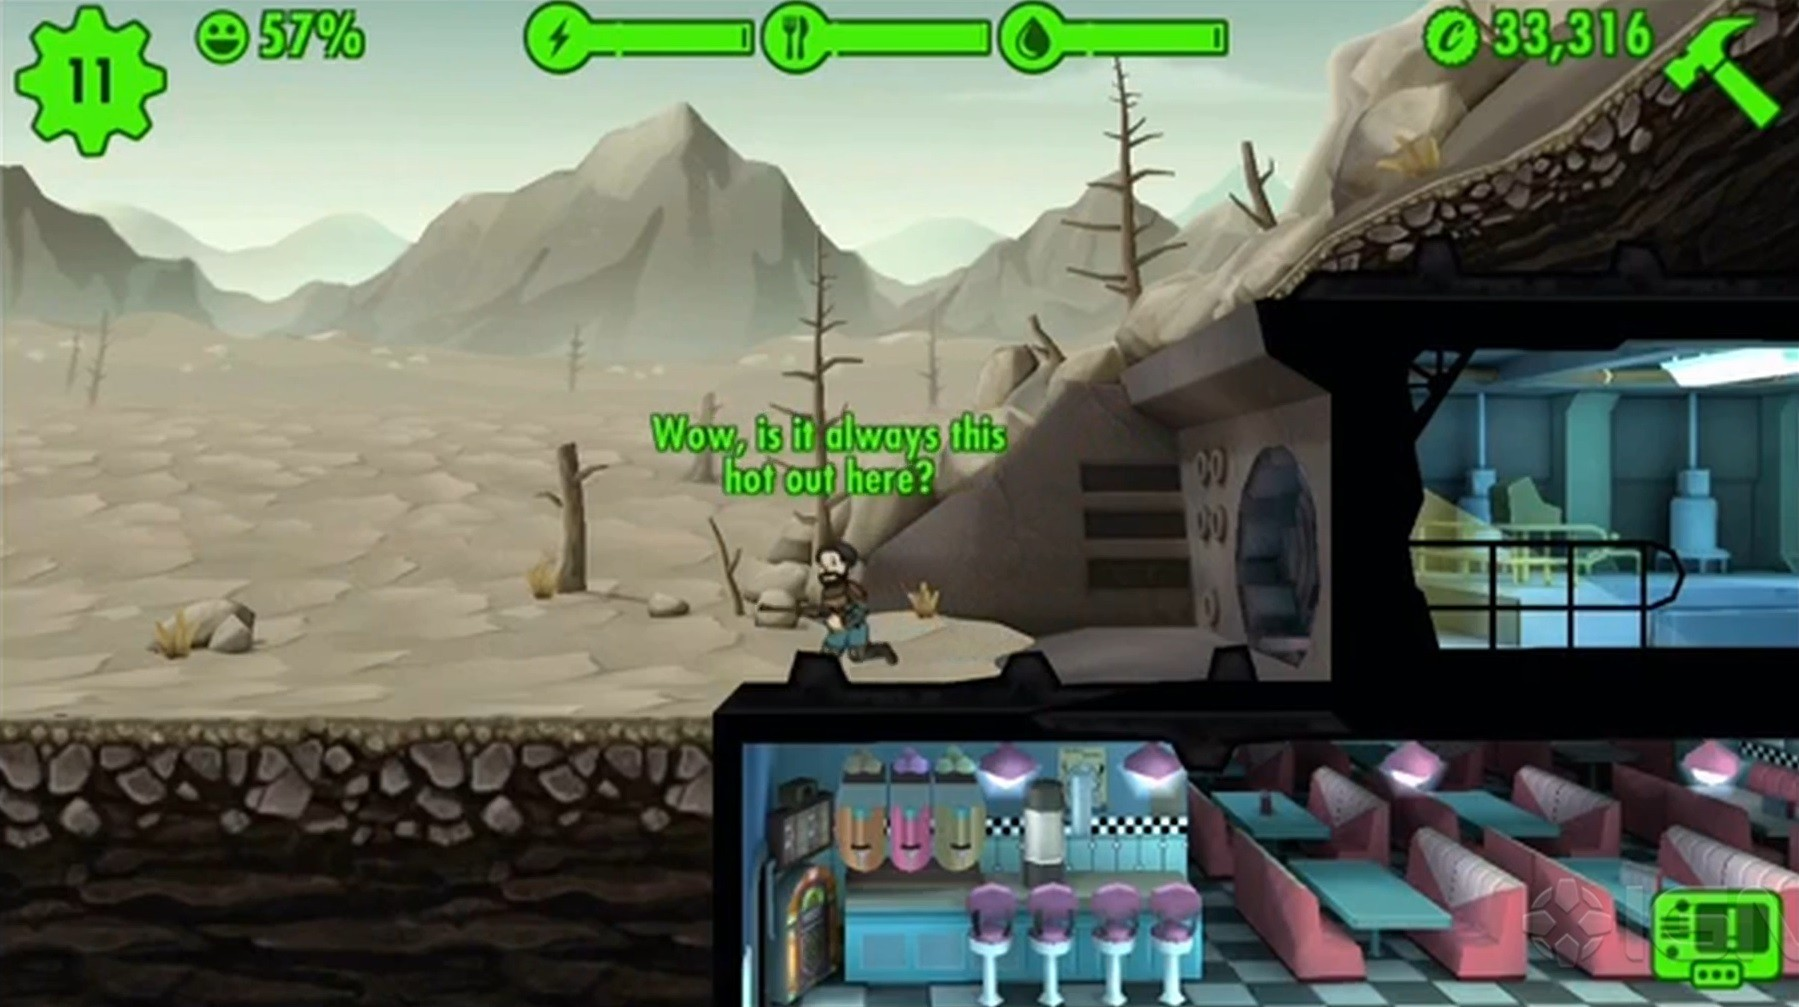 e32015 fallout shelter une appli pour un abri next stage. Black Bedroom Furniture Sets. Home Design Ideas